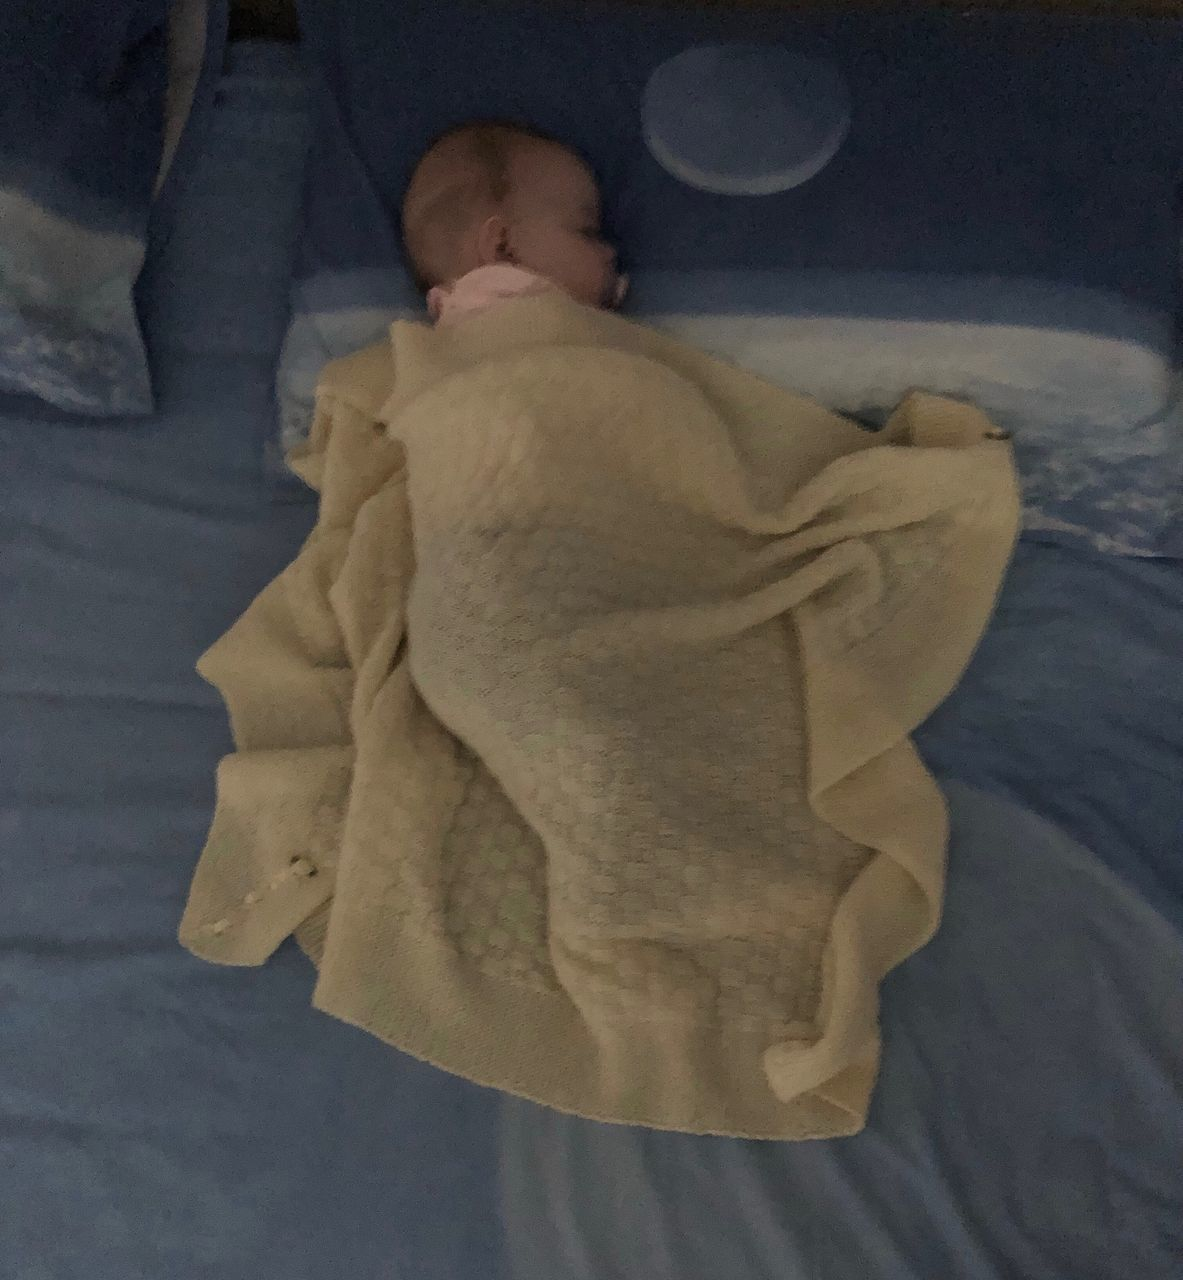 LOW SECTION OF CHILD LYING IN BED